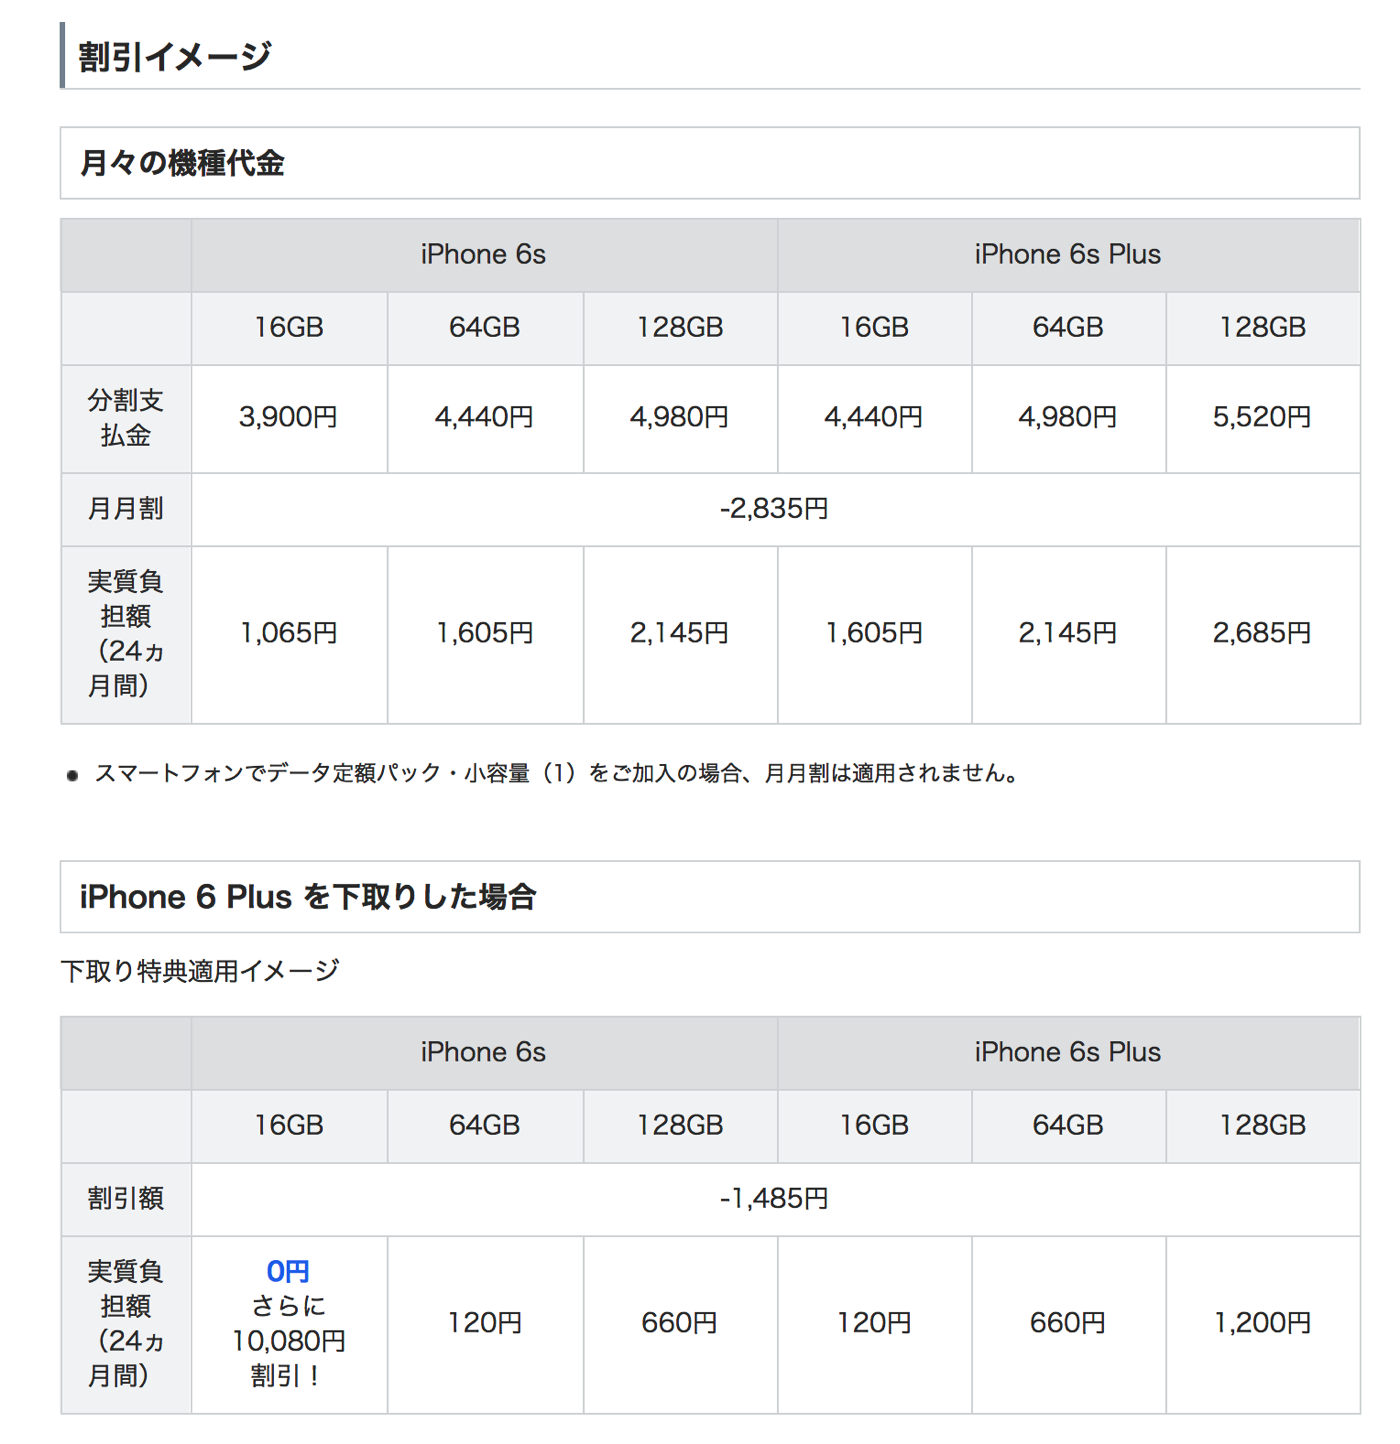 softbank-price-list-selling-for-iphone